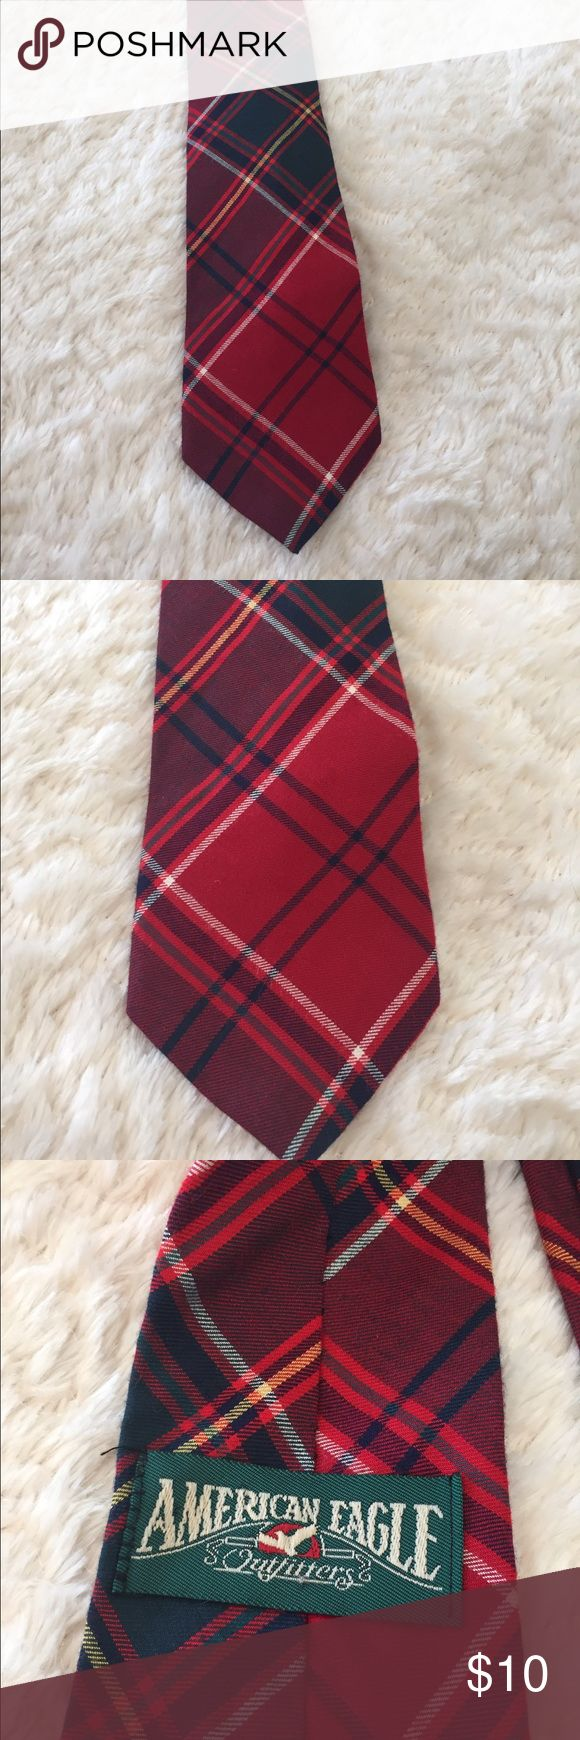 Red Plaid Tartan Men's Necktie American Eagle Great to wear at Christmas. Men's red plaid Necktie by American Eagle . Rayon and wool.Preowned and in good clean condition. Check out my closet to save on bundles . Reasonable offers accepted. American Eagle Outfitters Accessories Ties